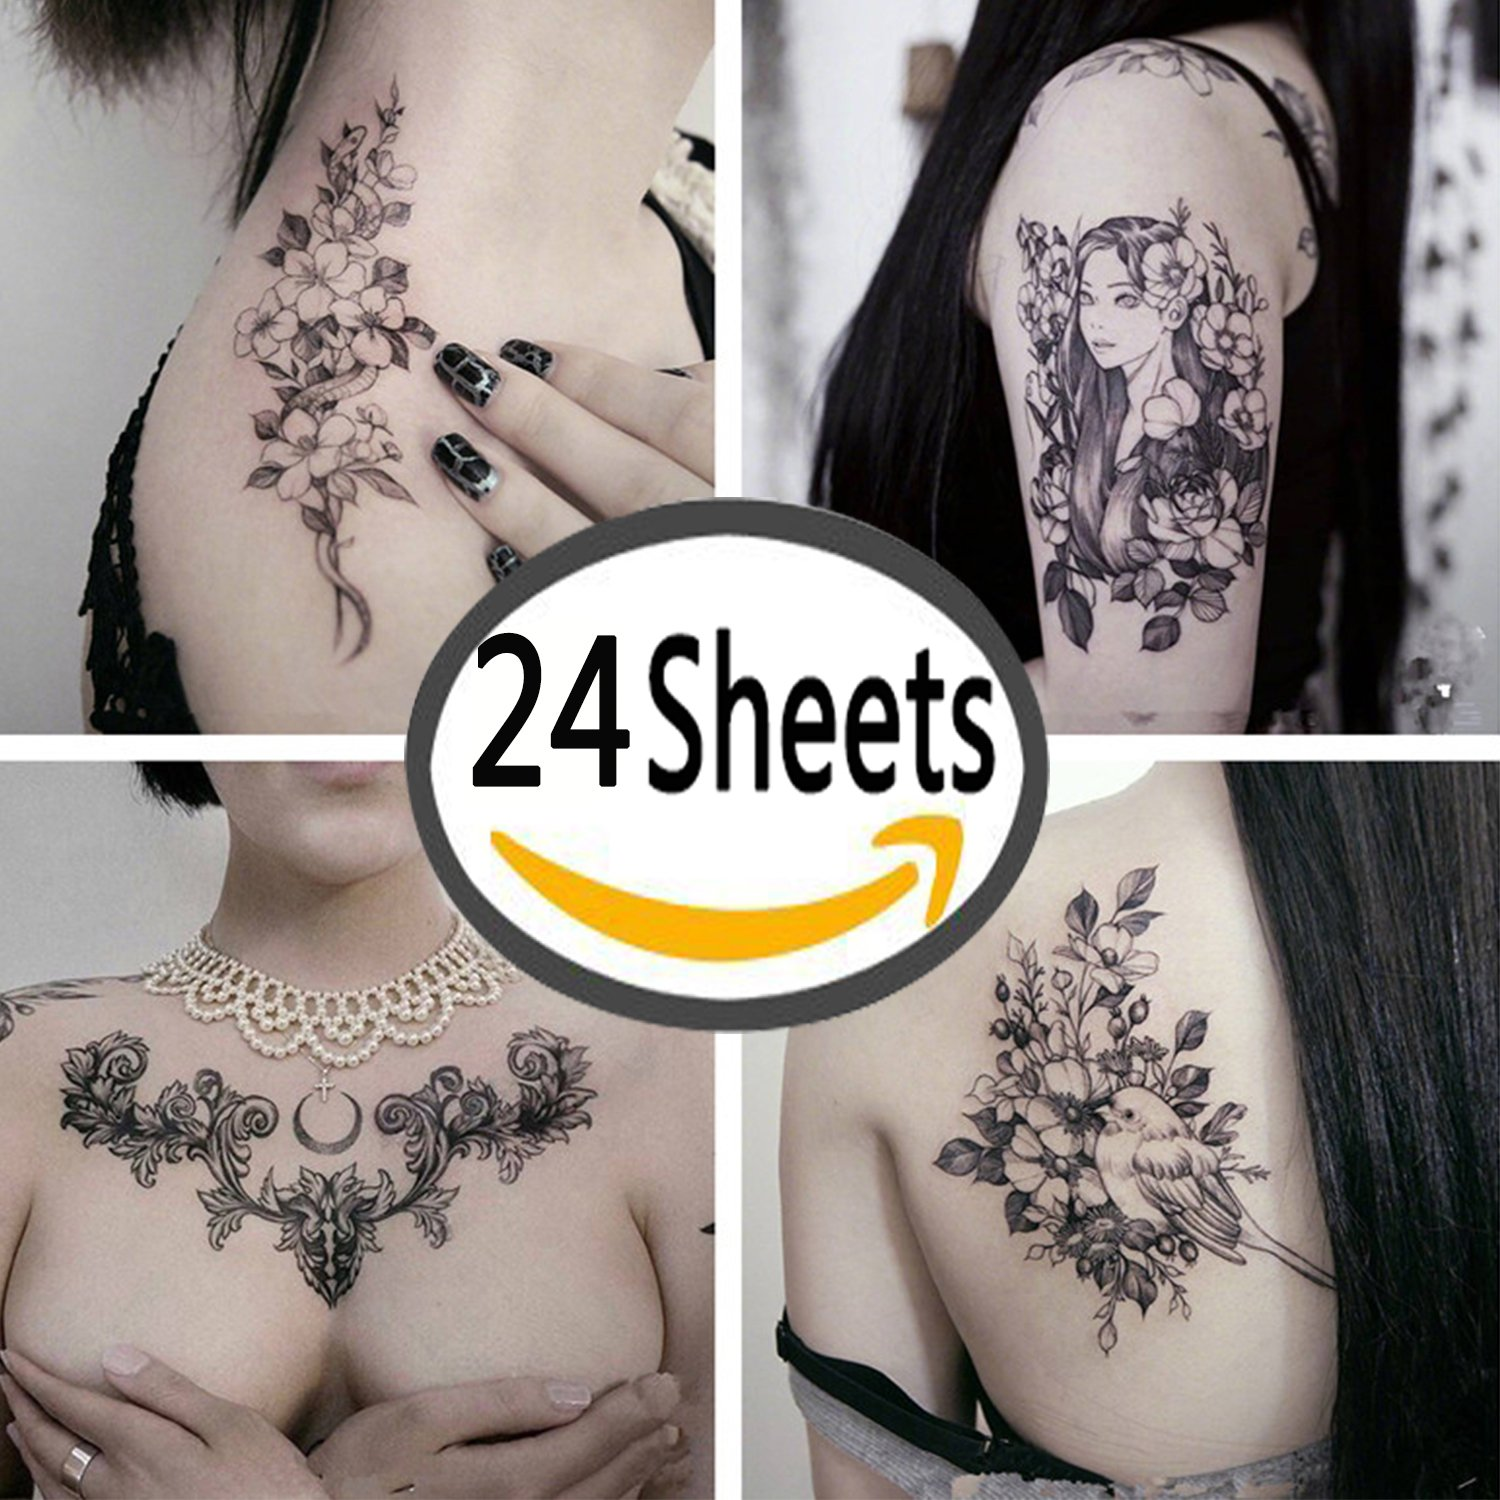 Amazon.com : DaLin 4 Sheets Temporary Tattoos For Men